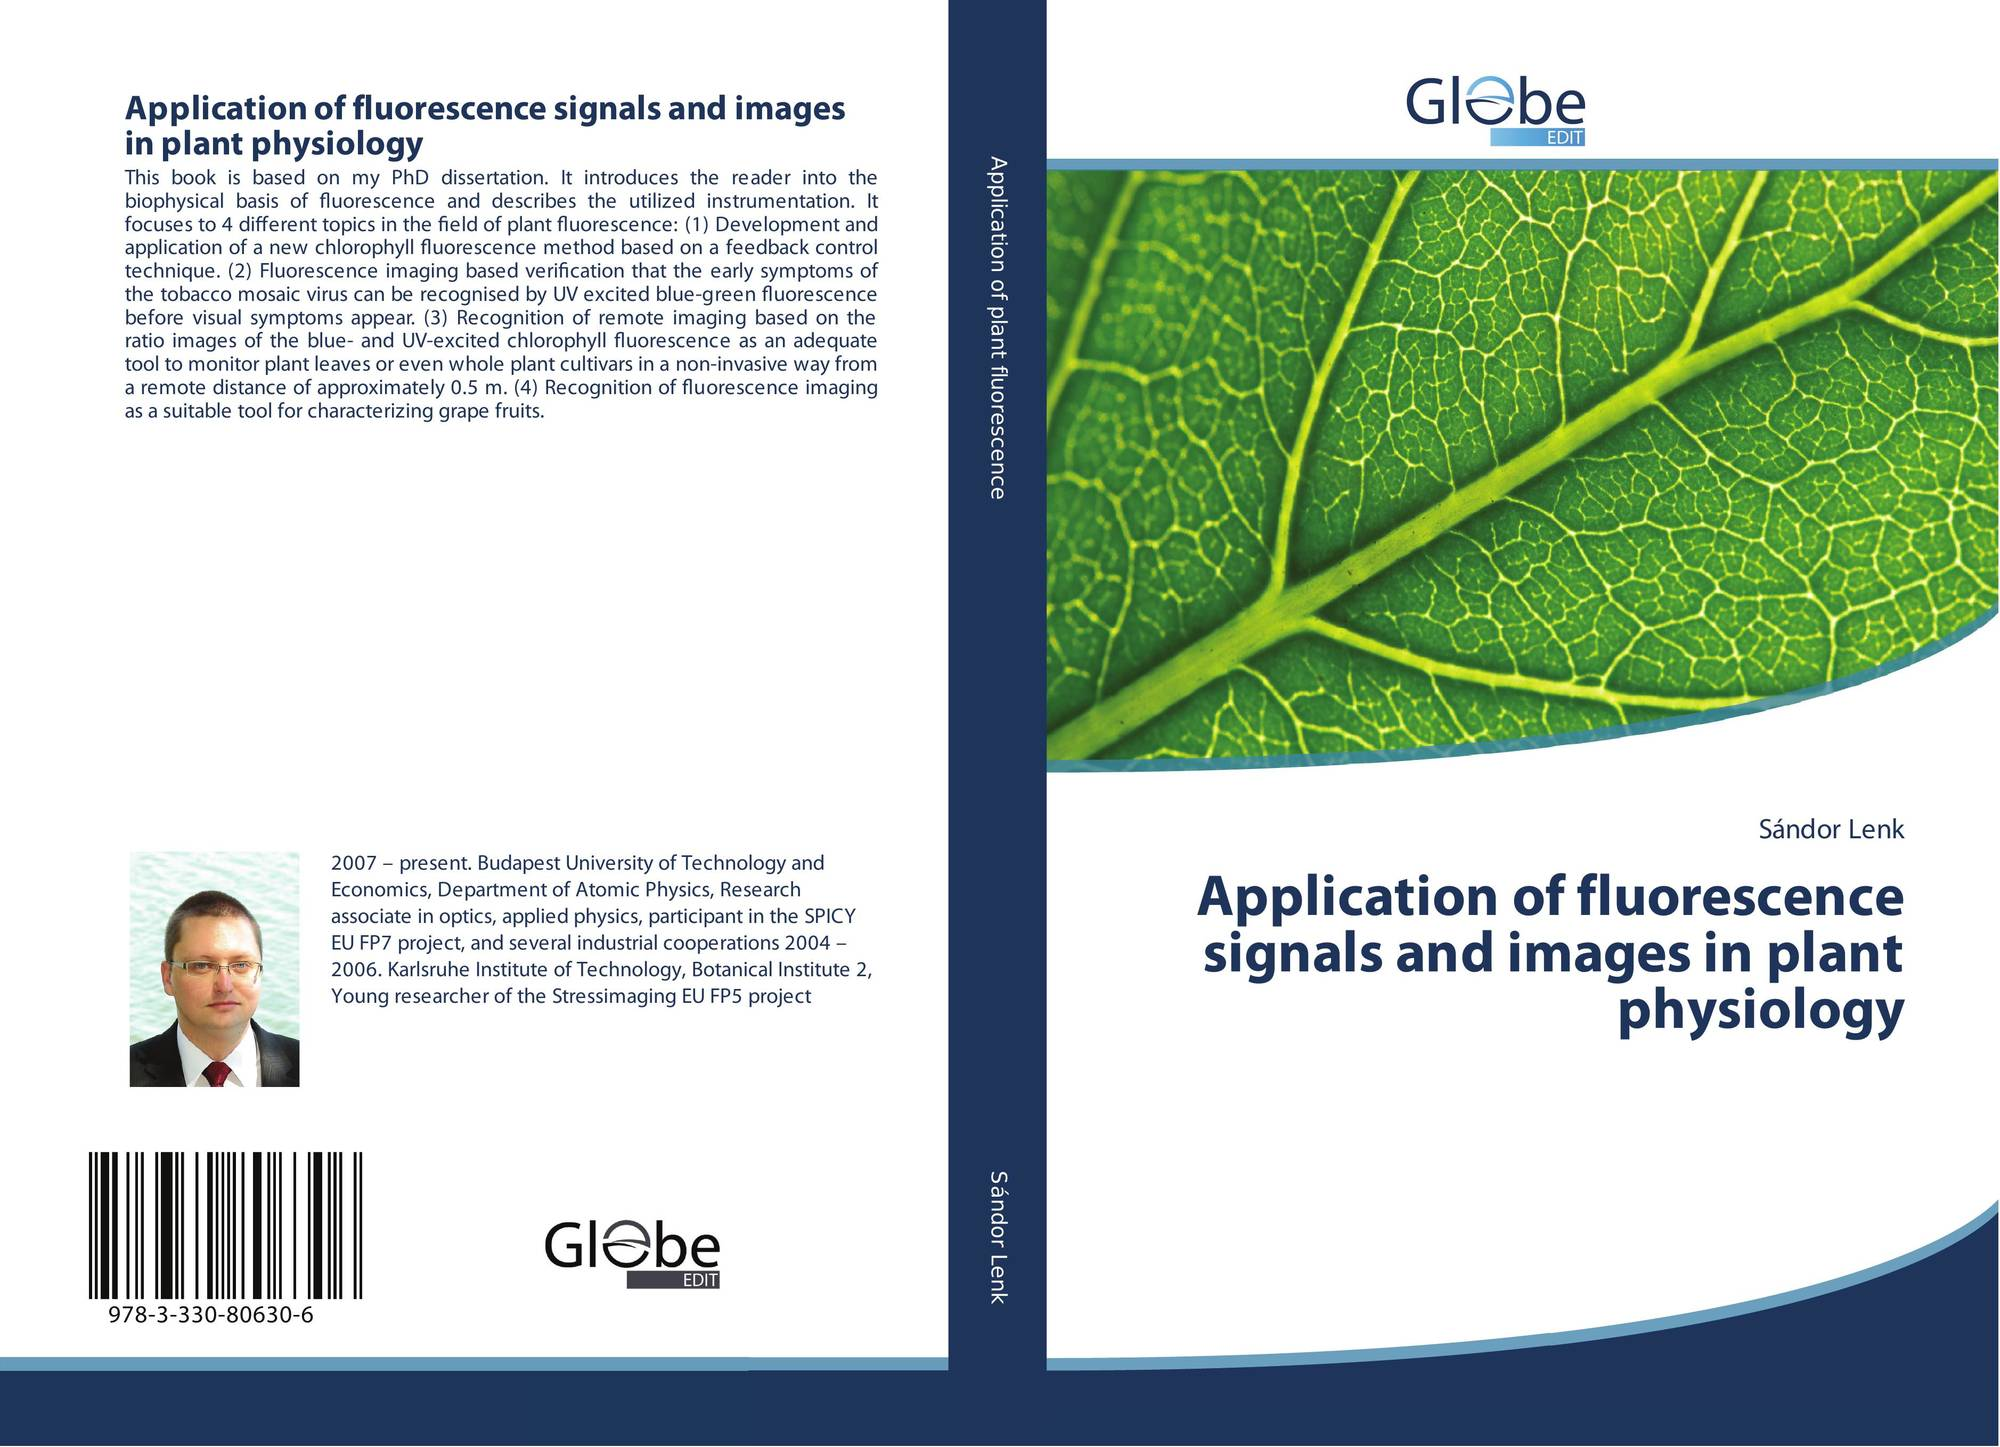 Application of fluorescence signals and images in plant